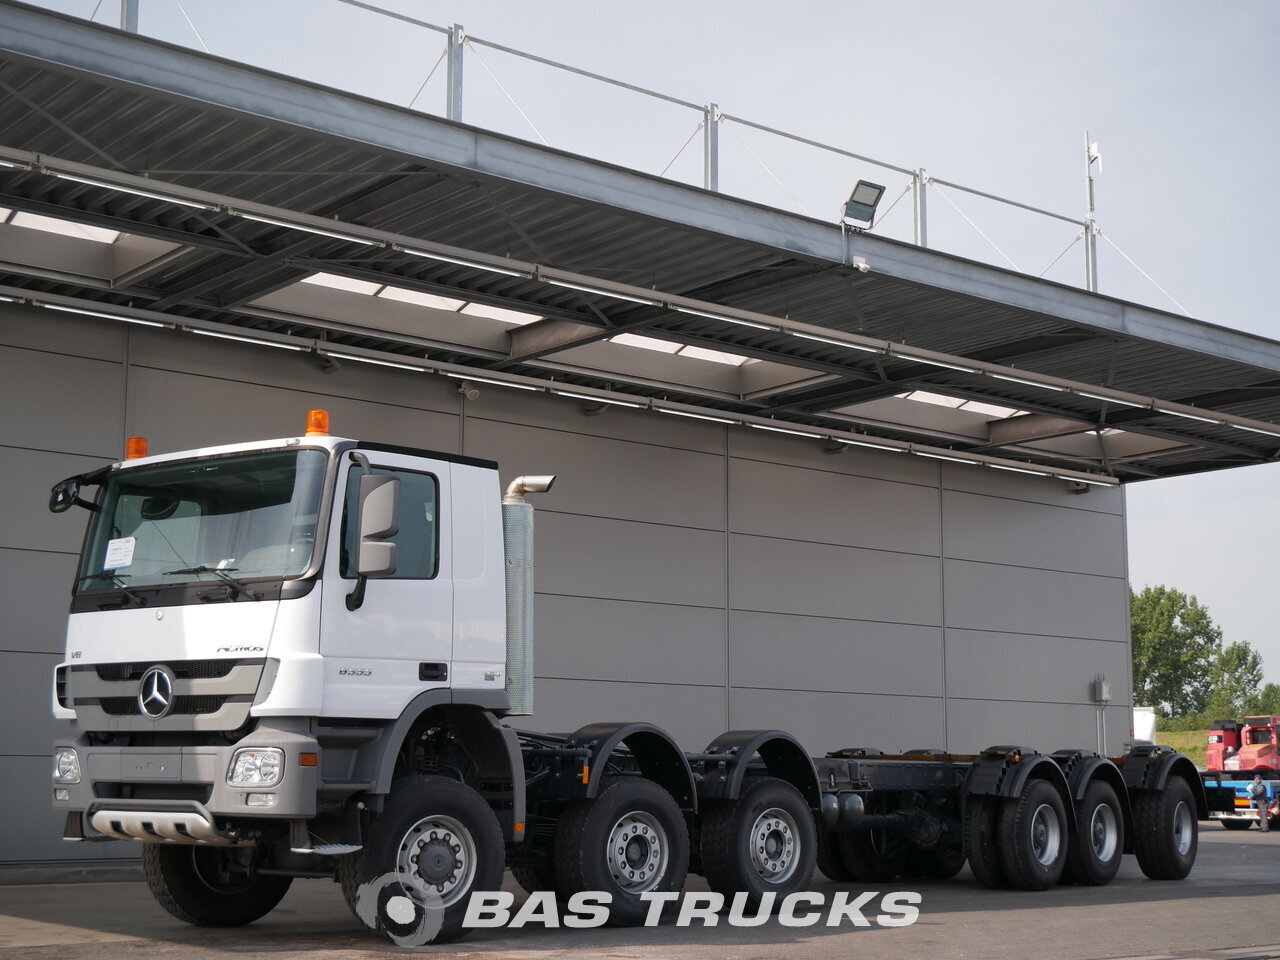 For sale at BAS Trucks: Mercedes Actros 6555 K 12X6 New